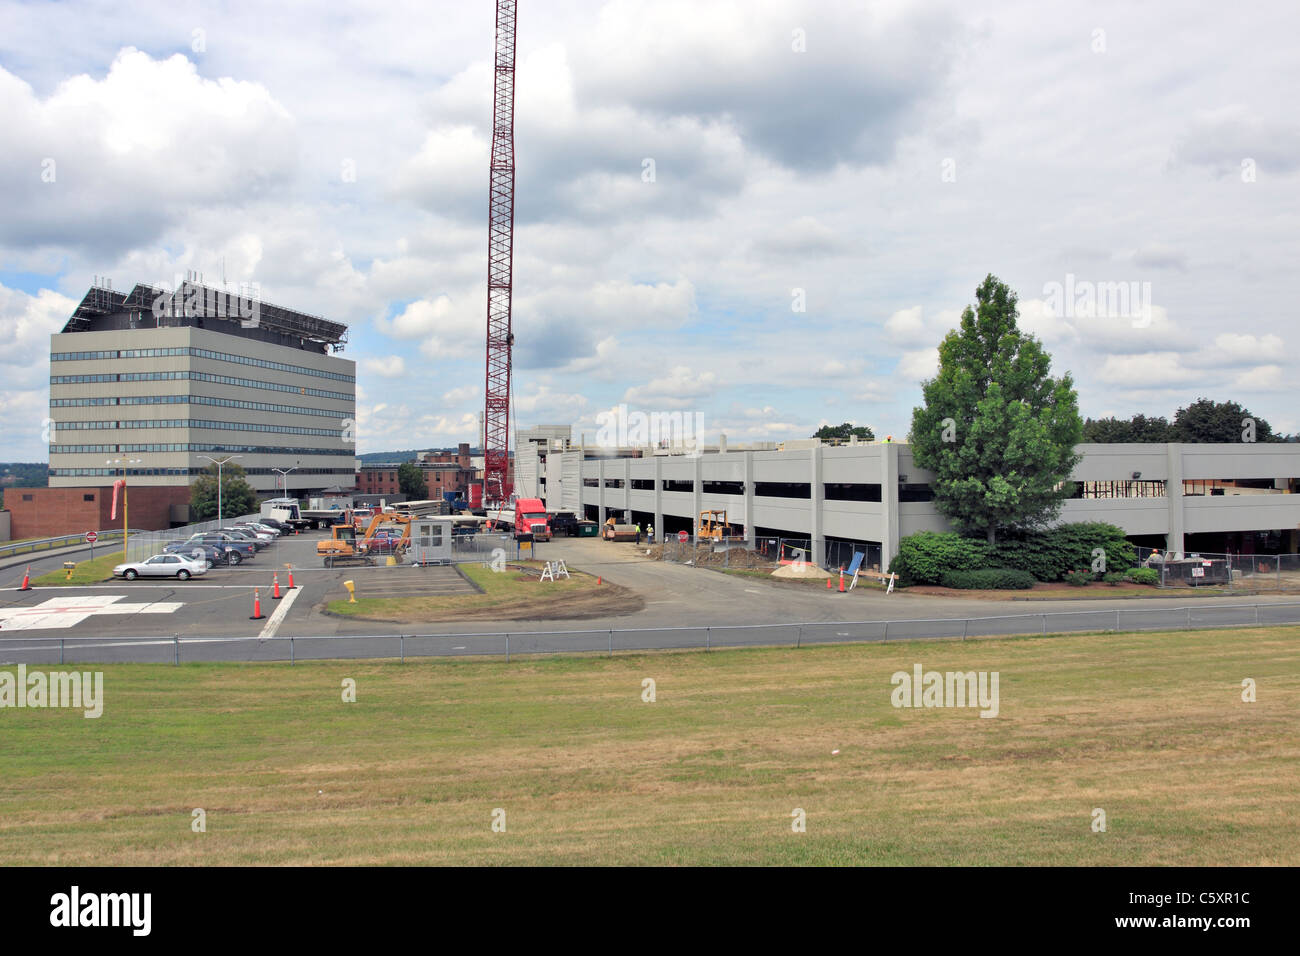 Danbury stock photos danbury stock images alamy for The danbury